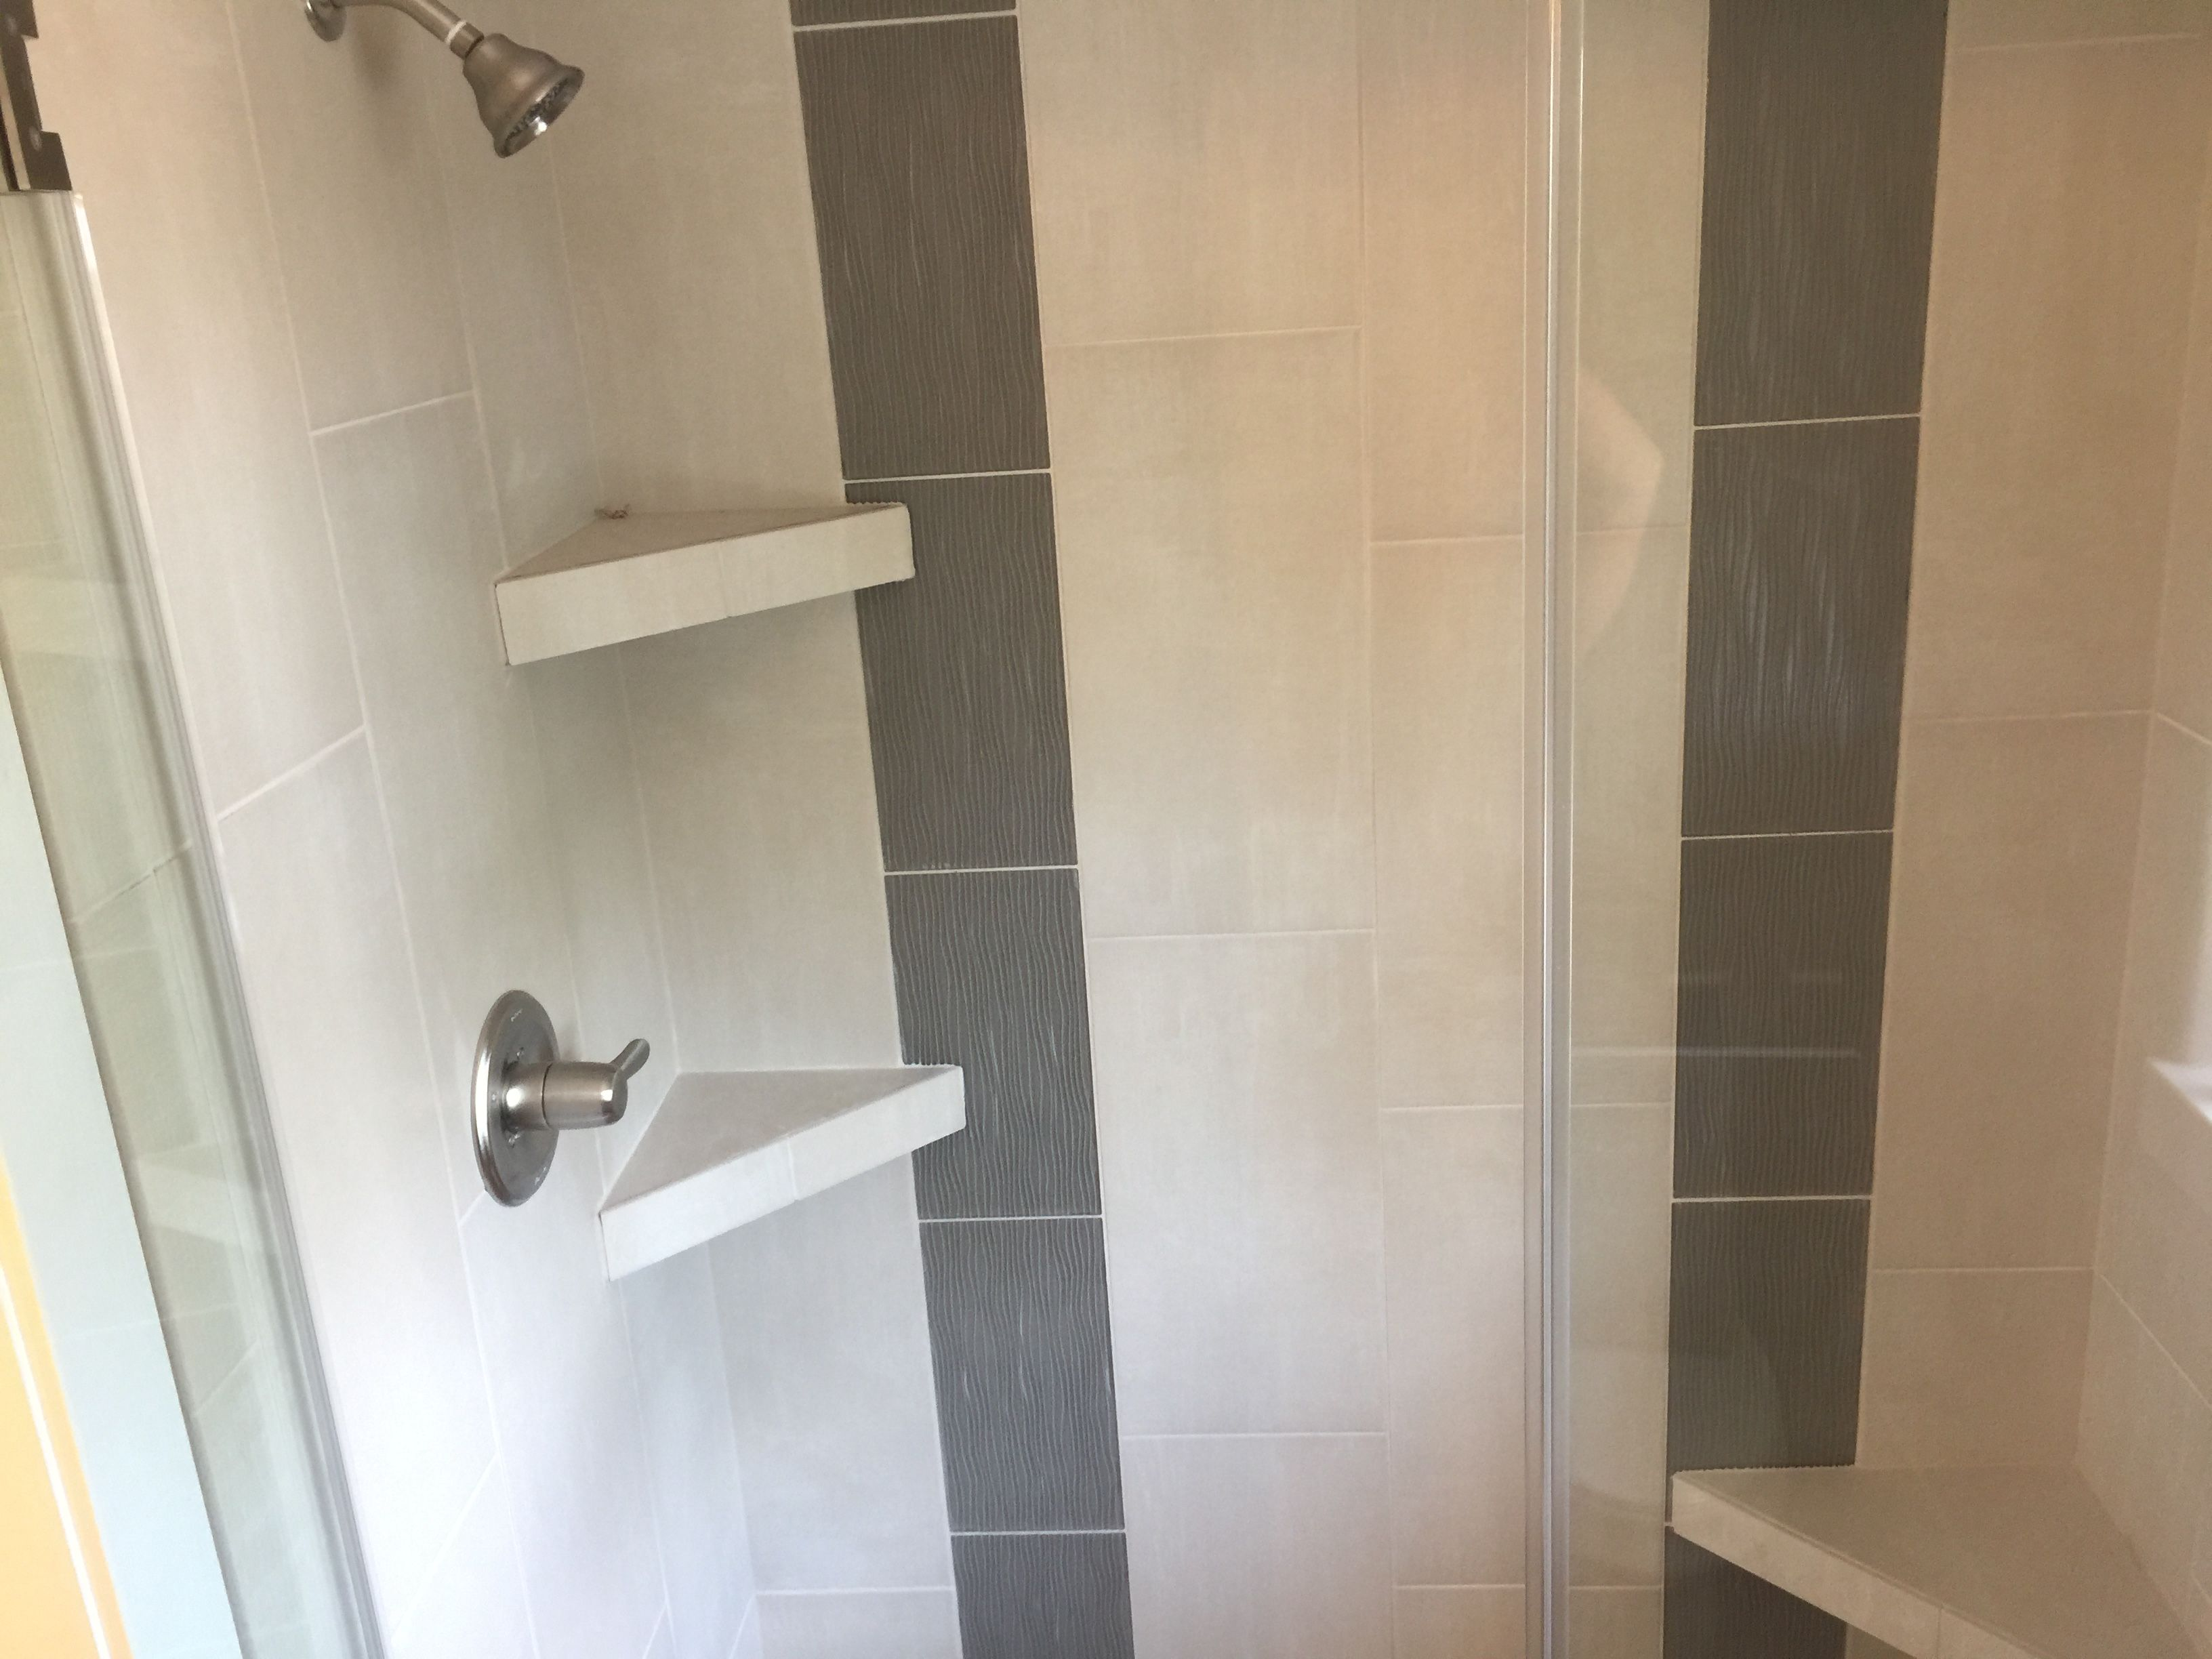 Custom Tiled Shower With 12x24 Tile Installed 1 3 Staggered Vertically With 8x16 3d Gl Porcelain Tile Bathroom Small Bathroom Tiles White Marble Tile Bathroom